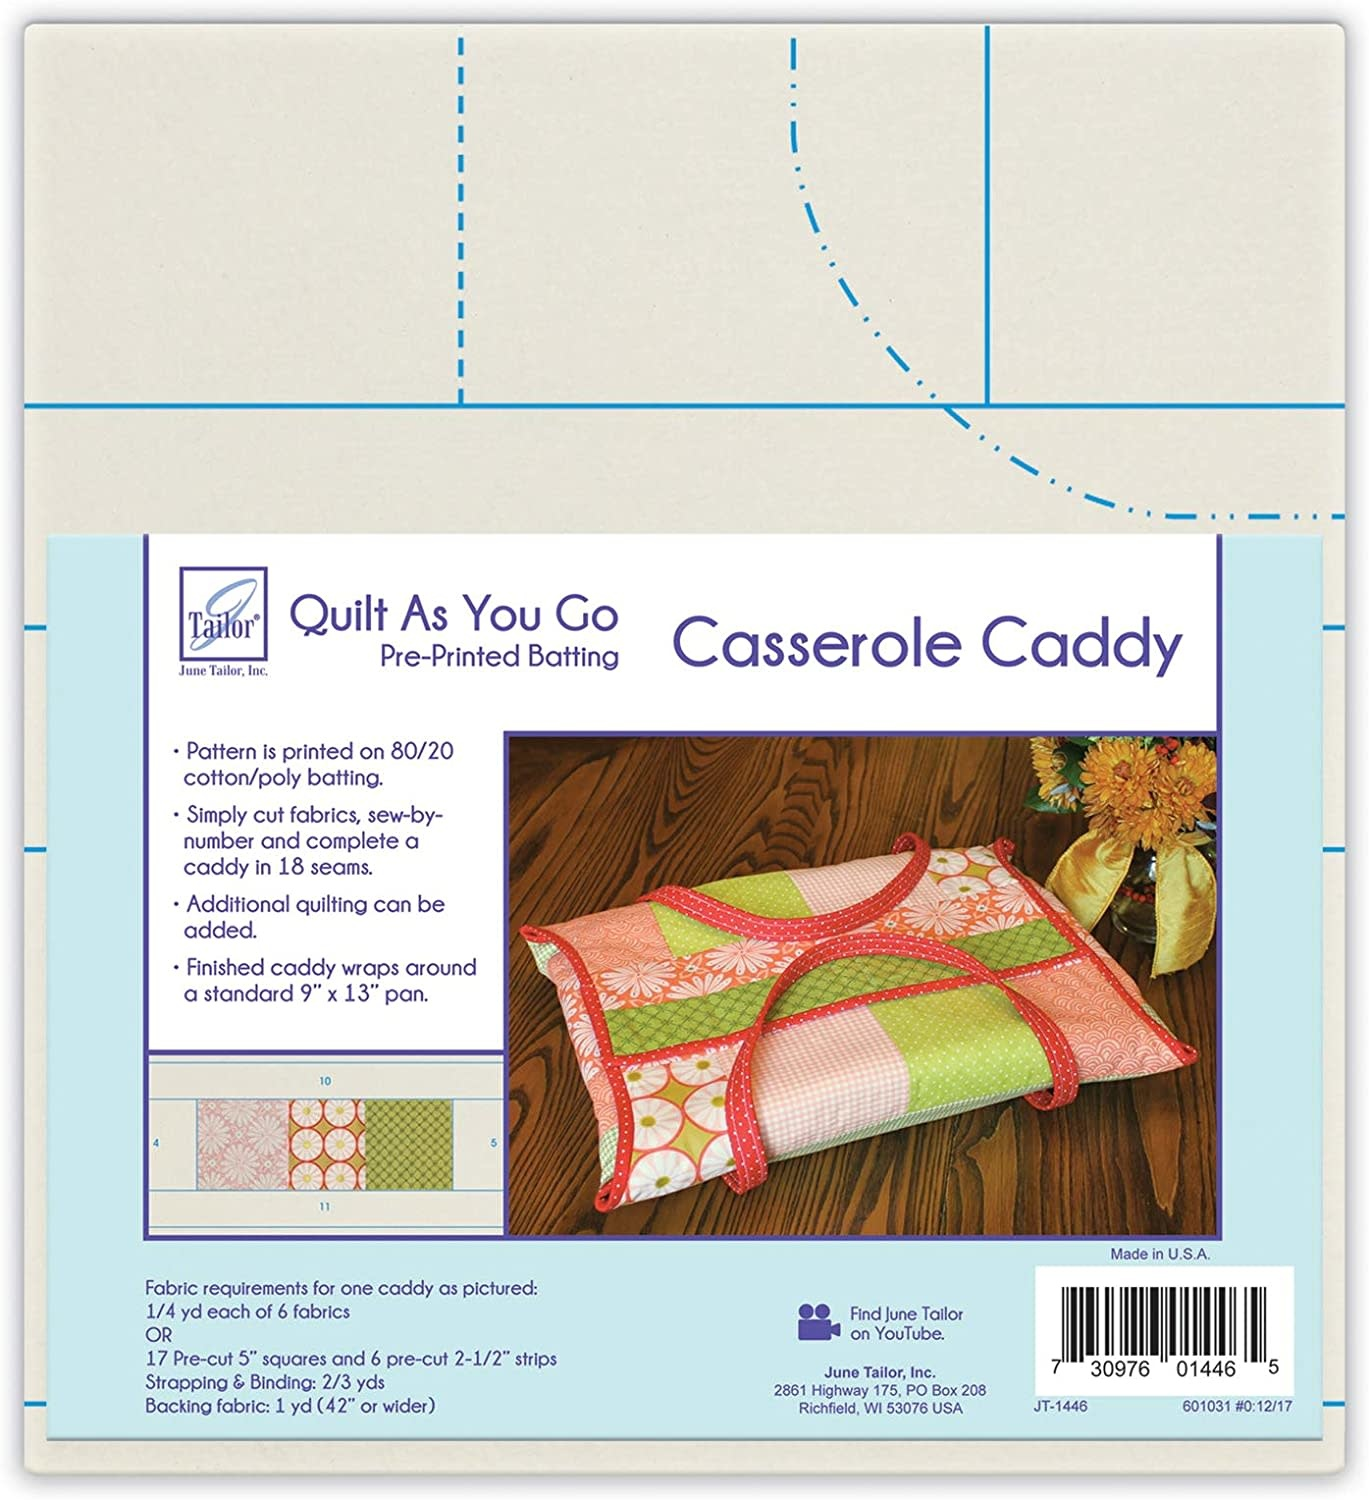 JUNE TAILOR QUILT AS YOU GO, CASSEROLE CADDY